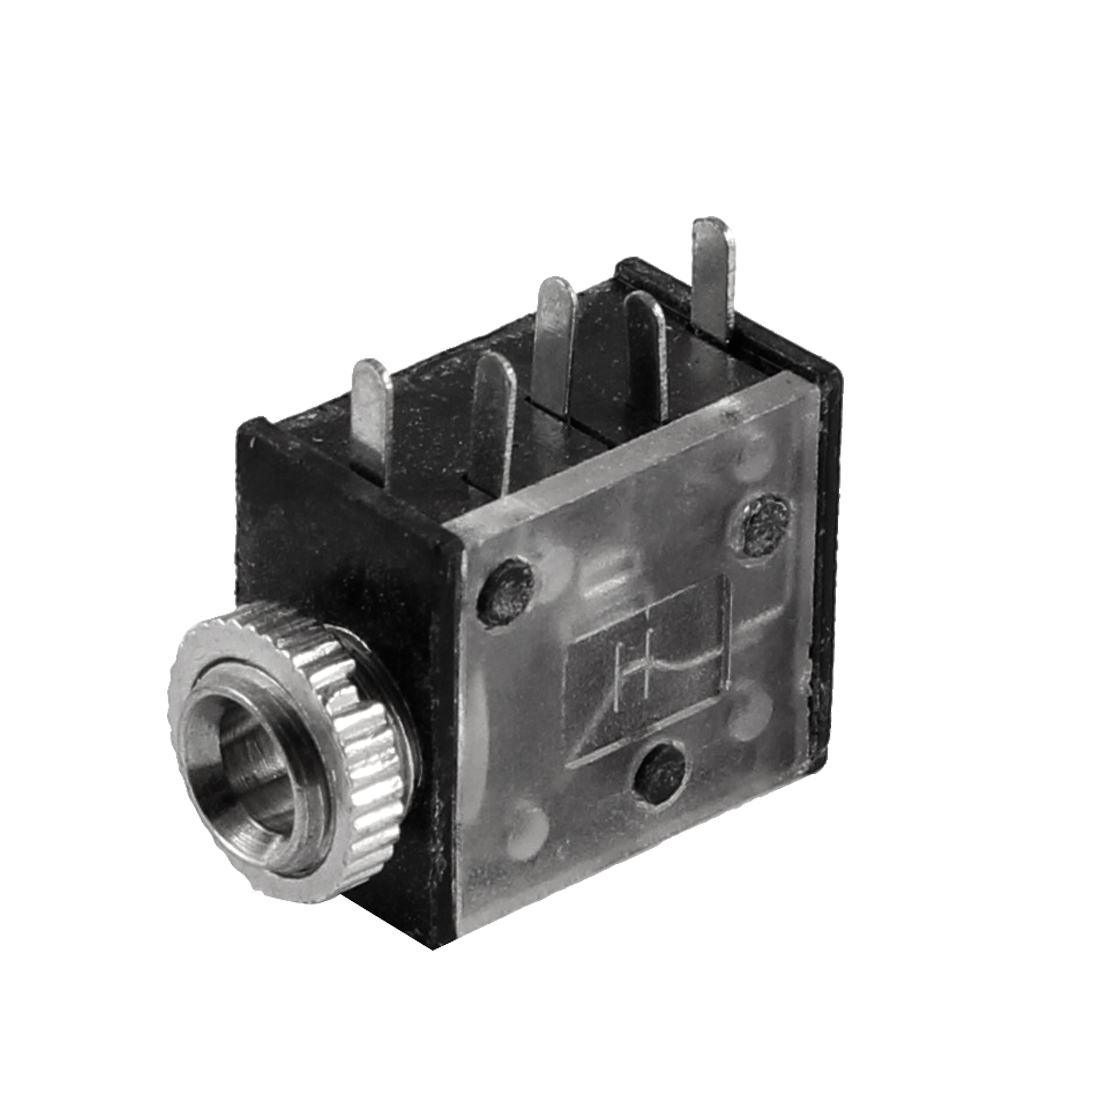 5 Terminals 3.5mm Stereo Jack Socket PCB Mount Connector Black Silver Tone